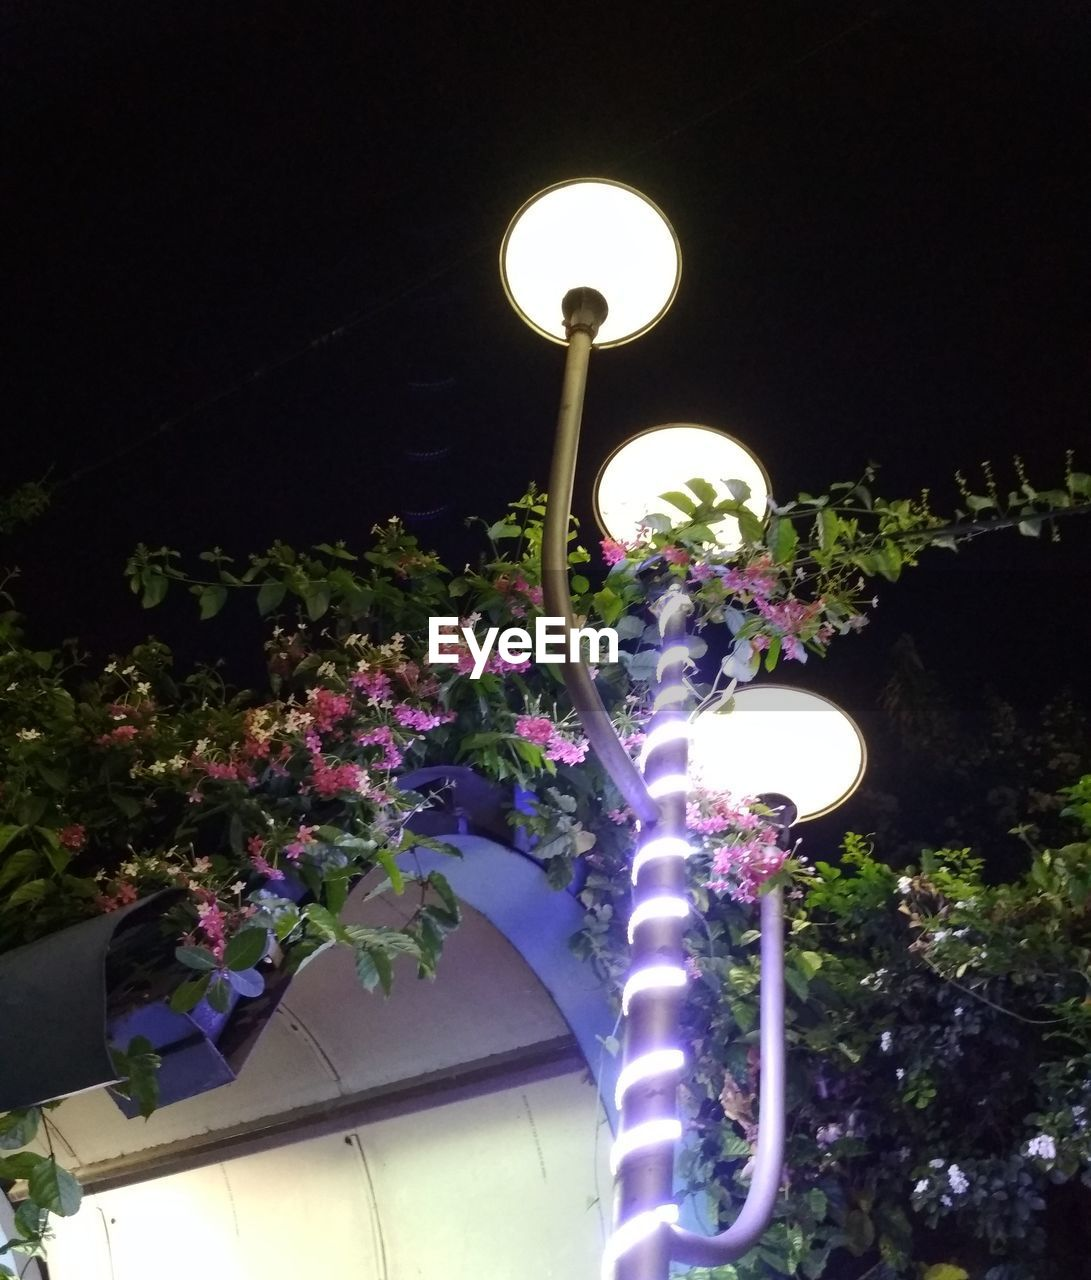 lighting equipment, flower, illuminated, low angle view, night, no people, plant, growth, nature, outdoors, tree, beauty in nature, fragility, architecture, clear sky, freshness